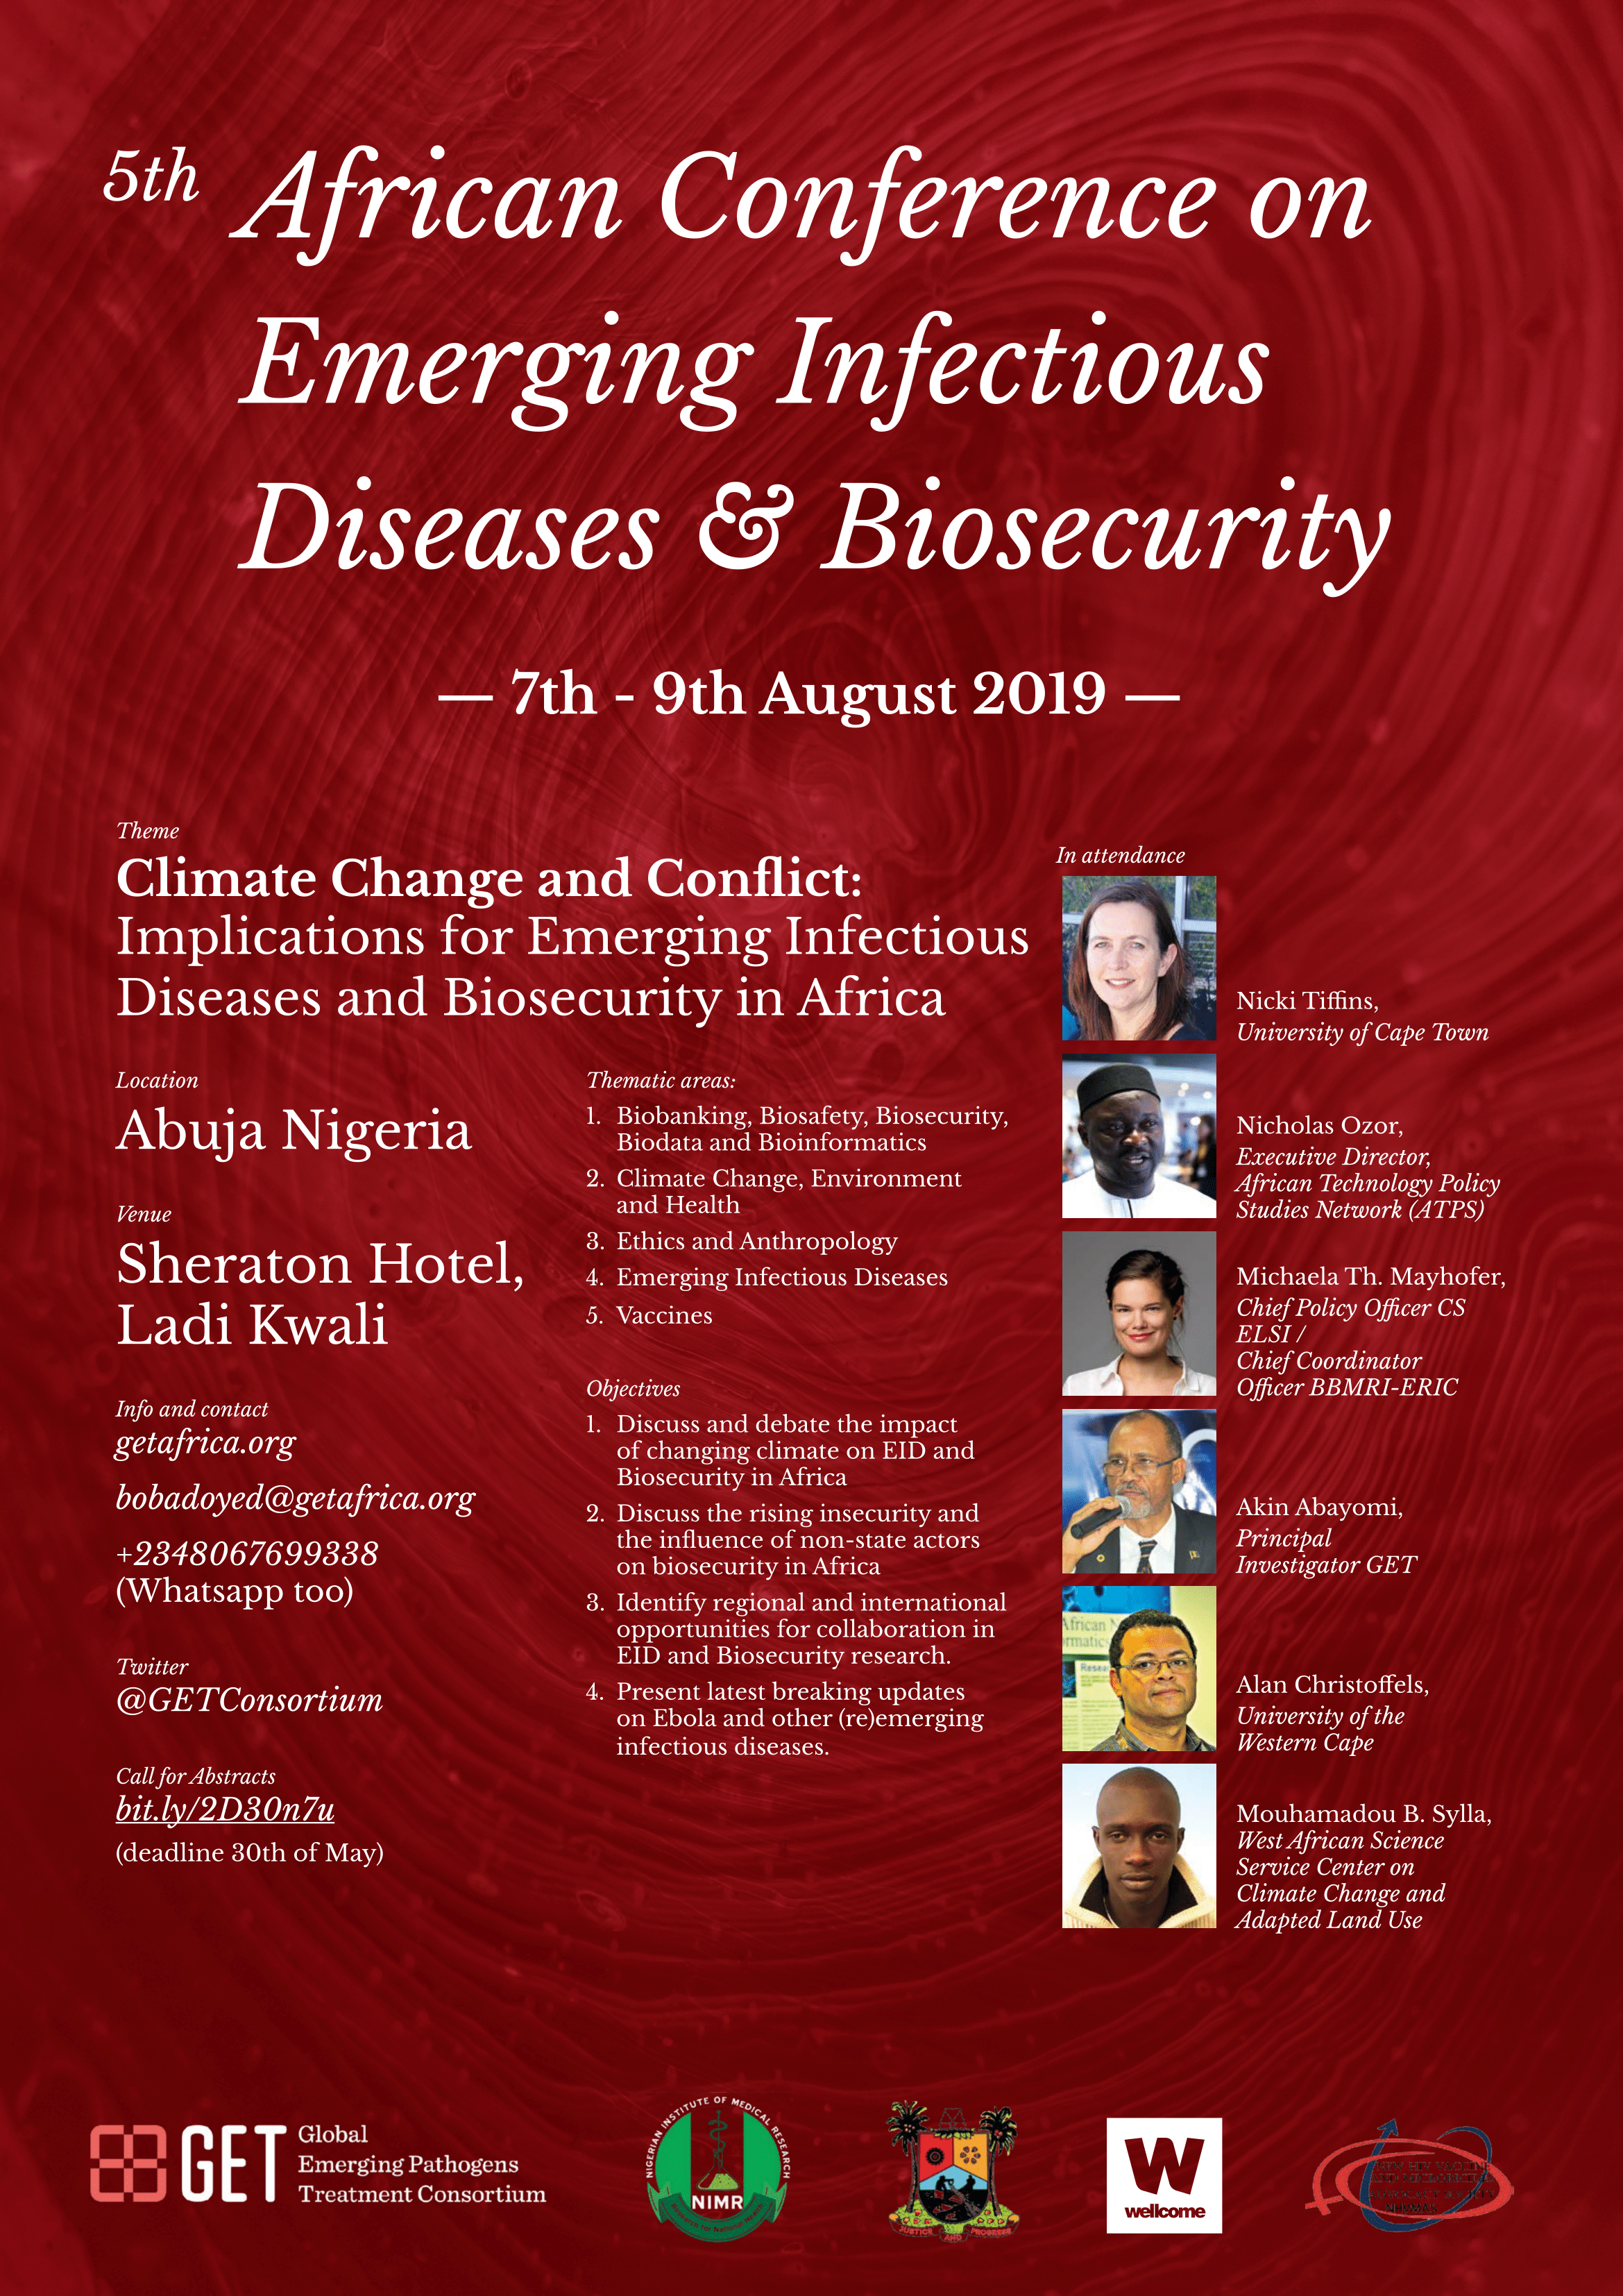 5th African Conference on Emerging Infectious Diseases